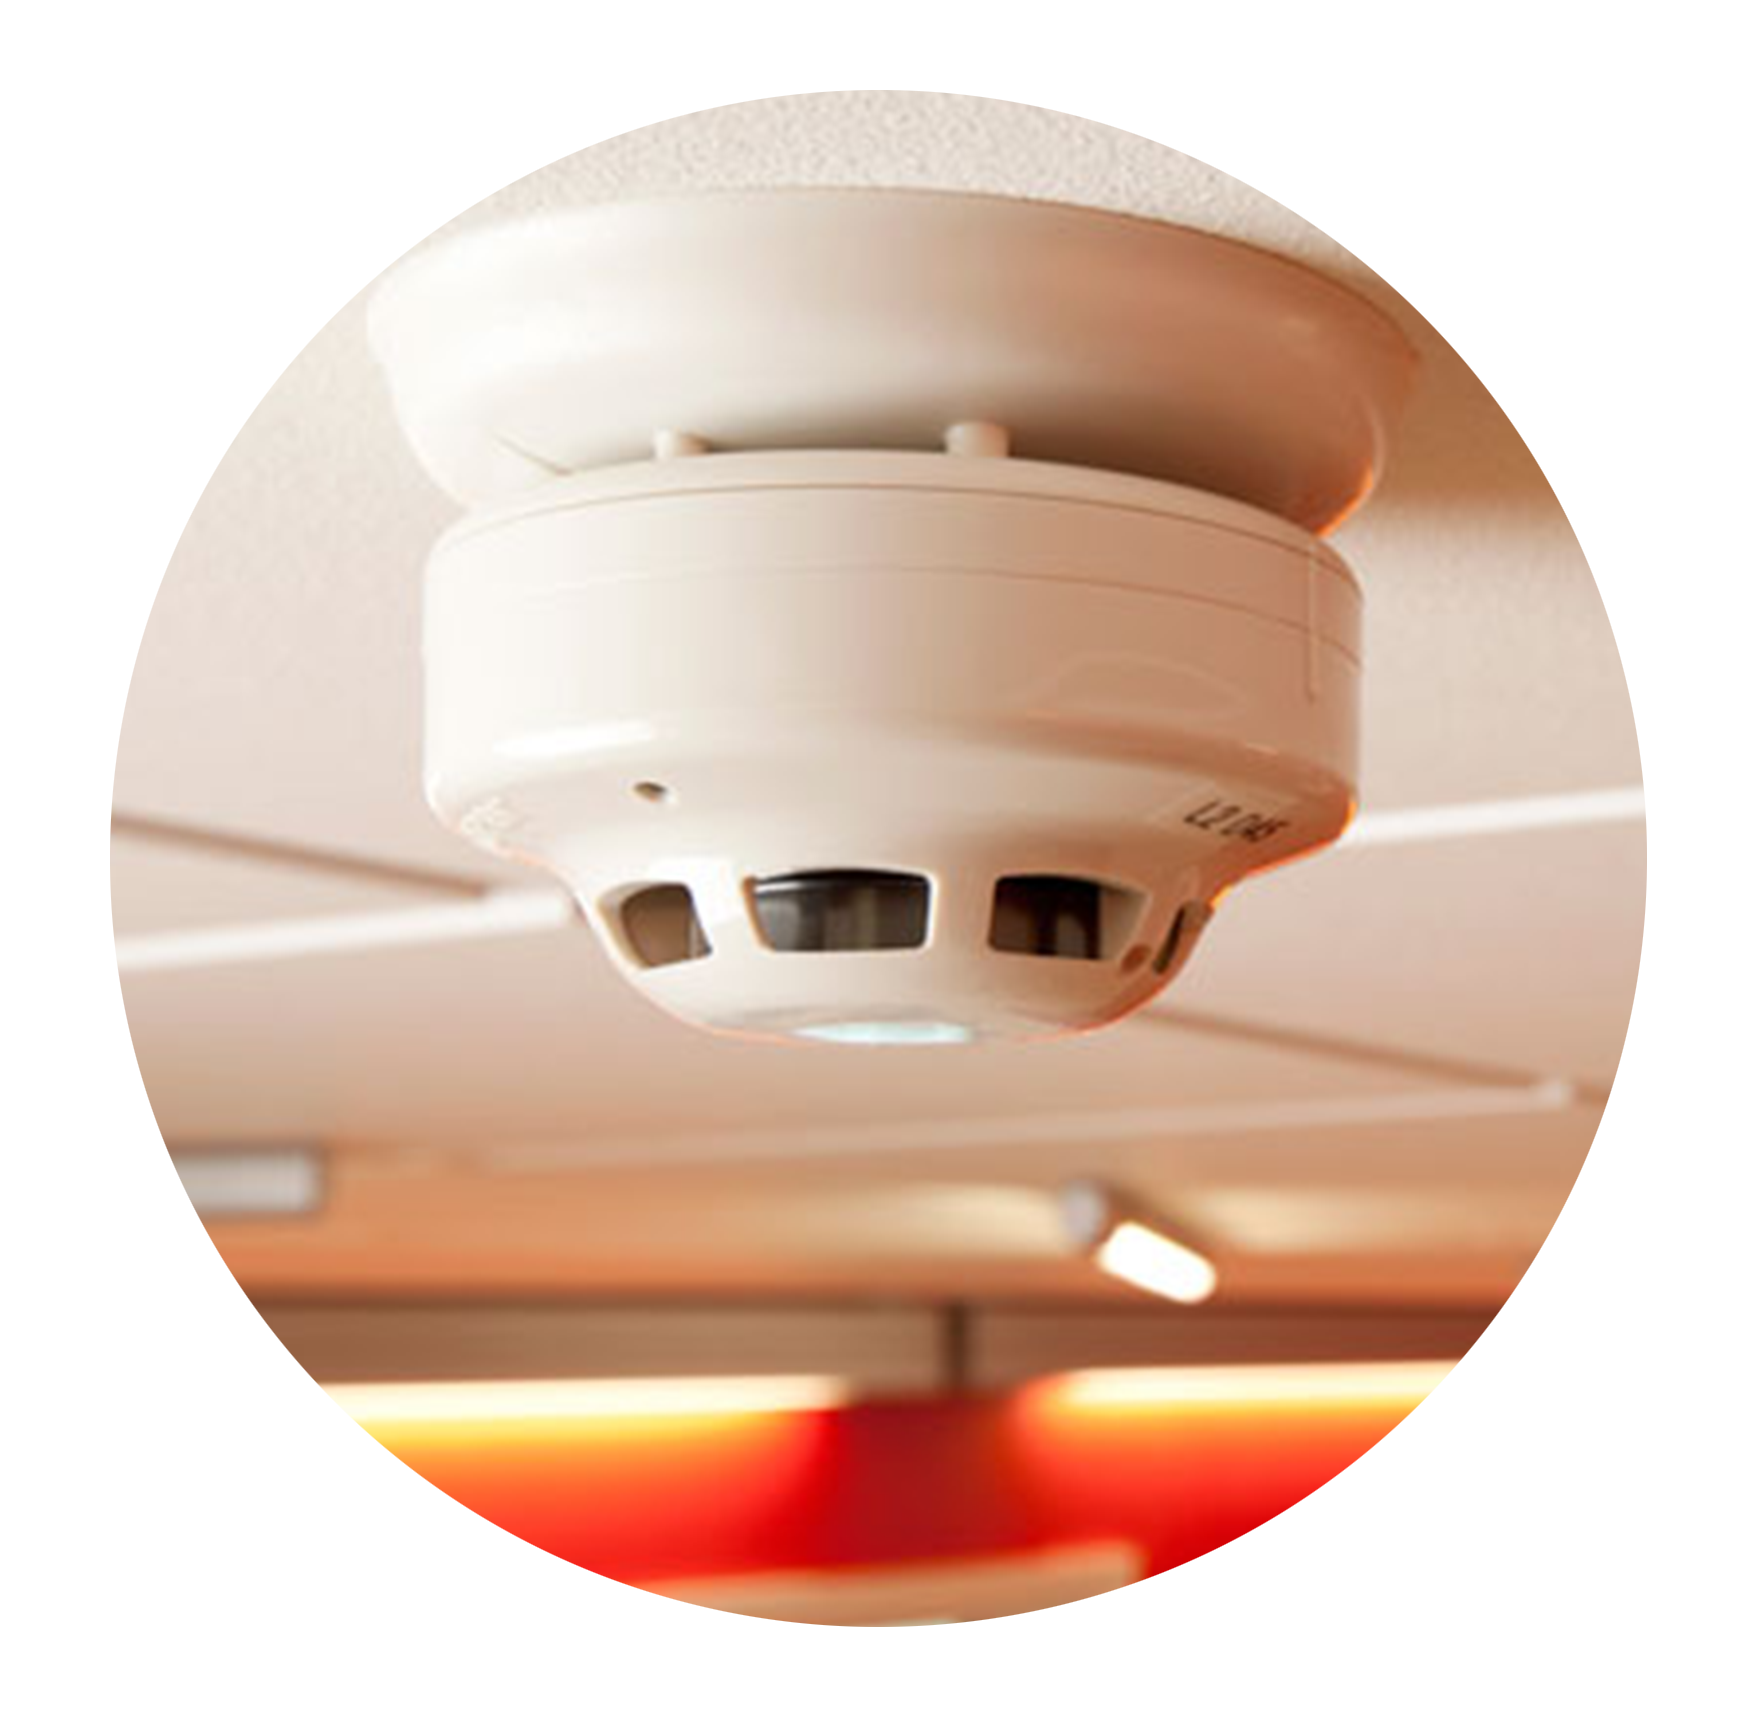 Fire detection Systems - The design, installation and commission of manual or automatic fire alarm systems from simple conventional systems to fully networked analogue addressable systems all compliant to BAFE standards.